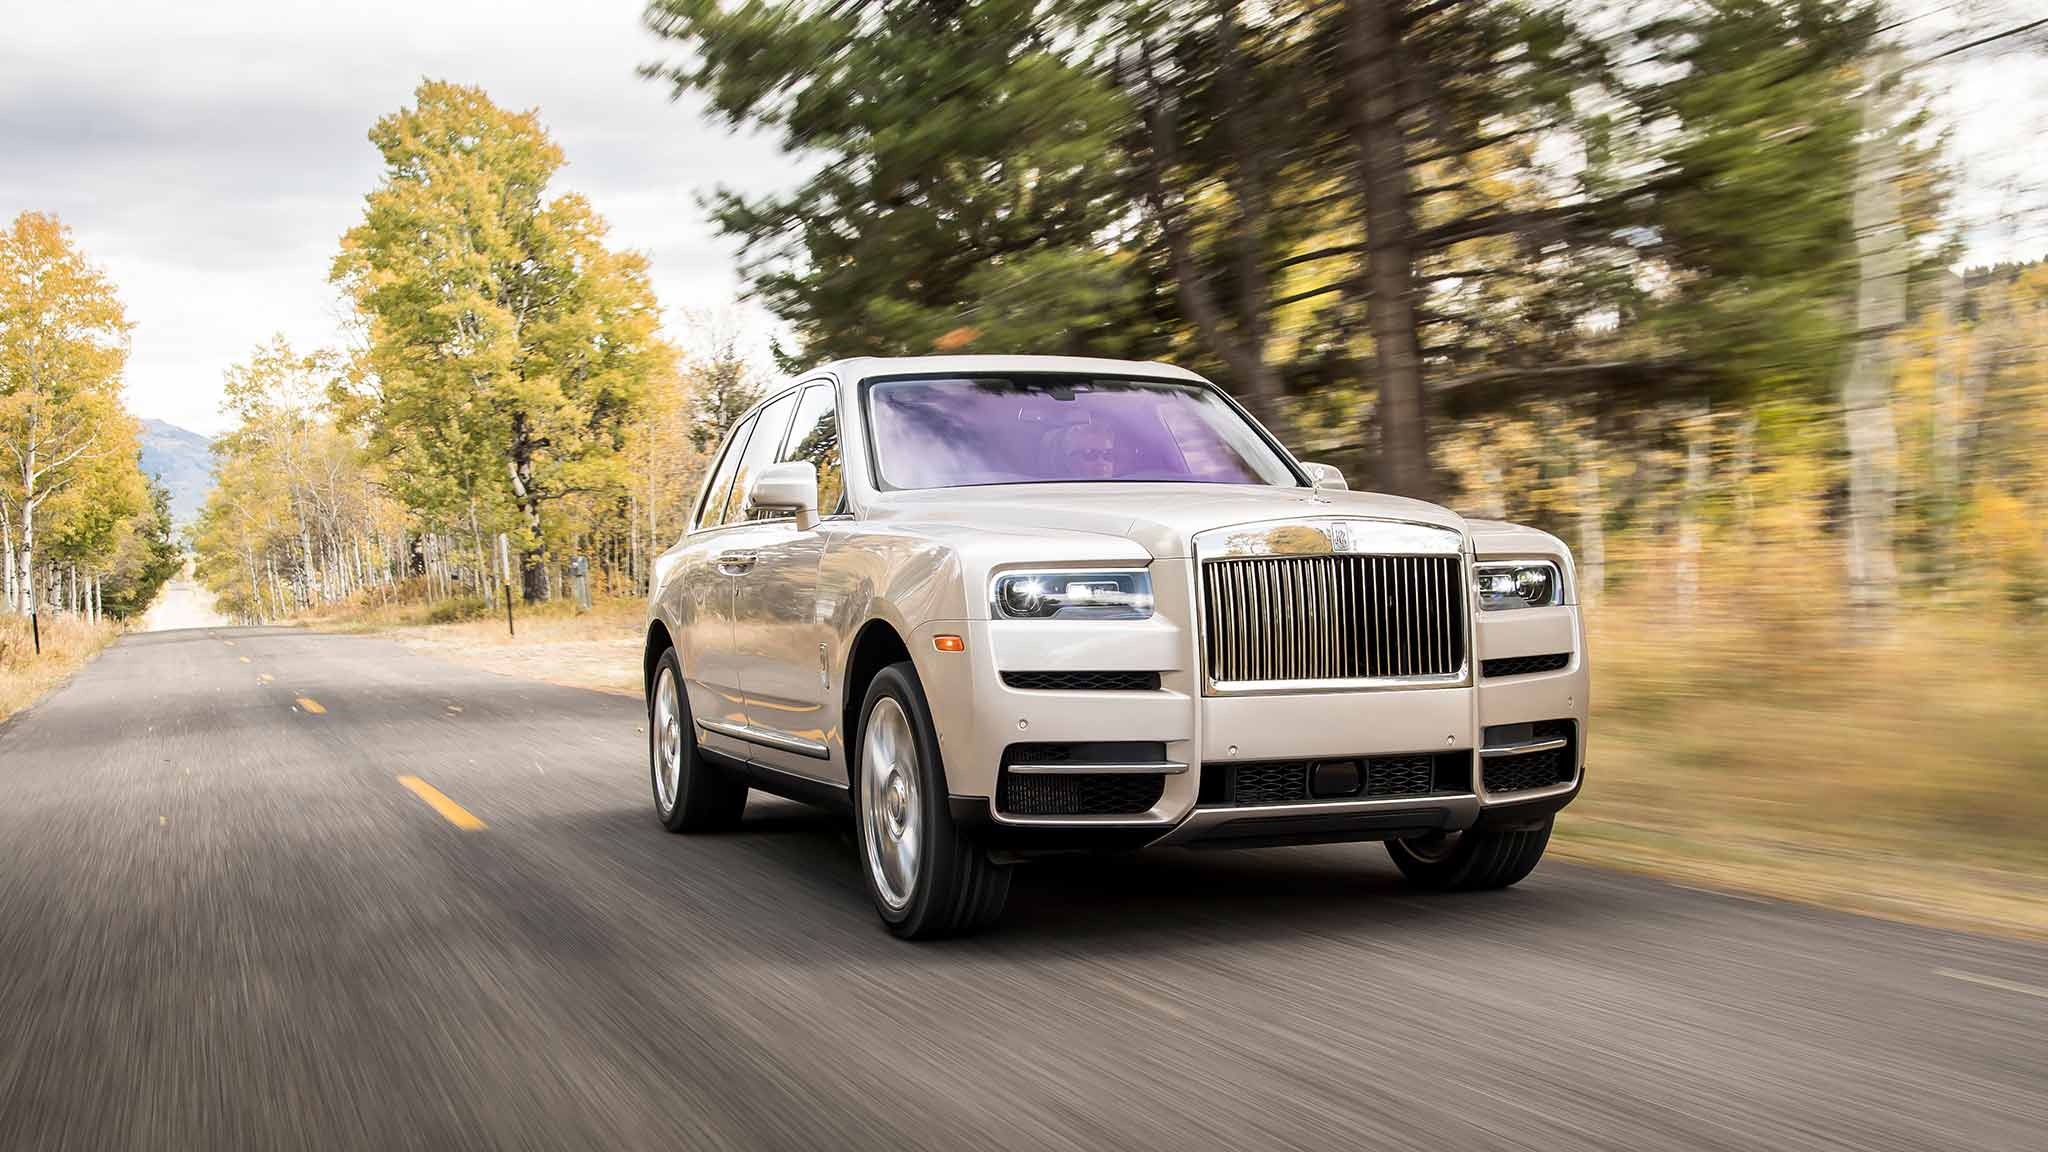 2019 Rolls Royce Cullinan Color White Sands Front